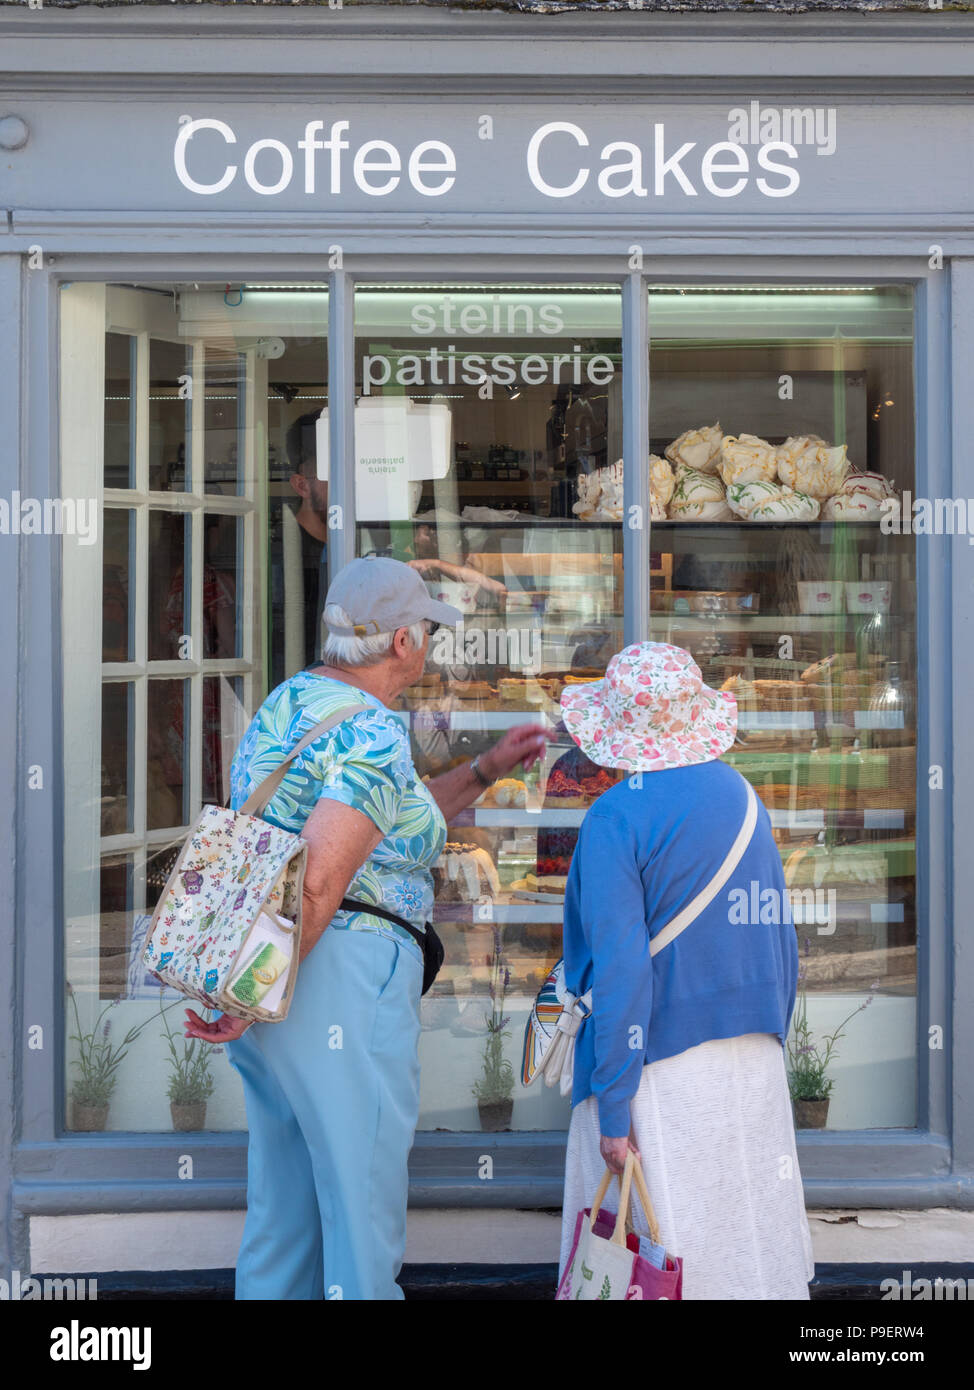 Two mature women shoppers looking in the window of Steins Patisserie and bakers shop in Padstow Cornwall UK - Stock Image